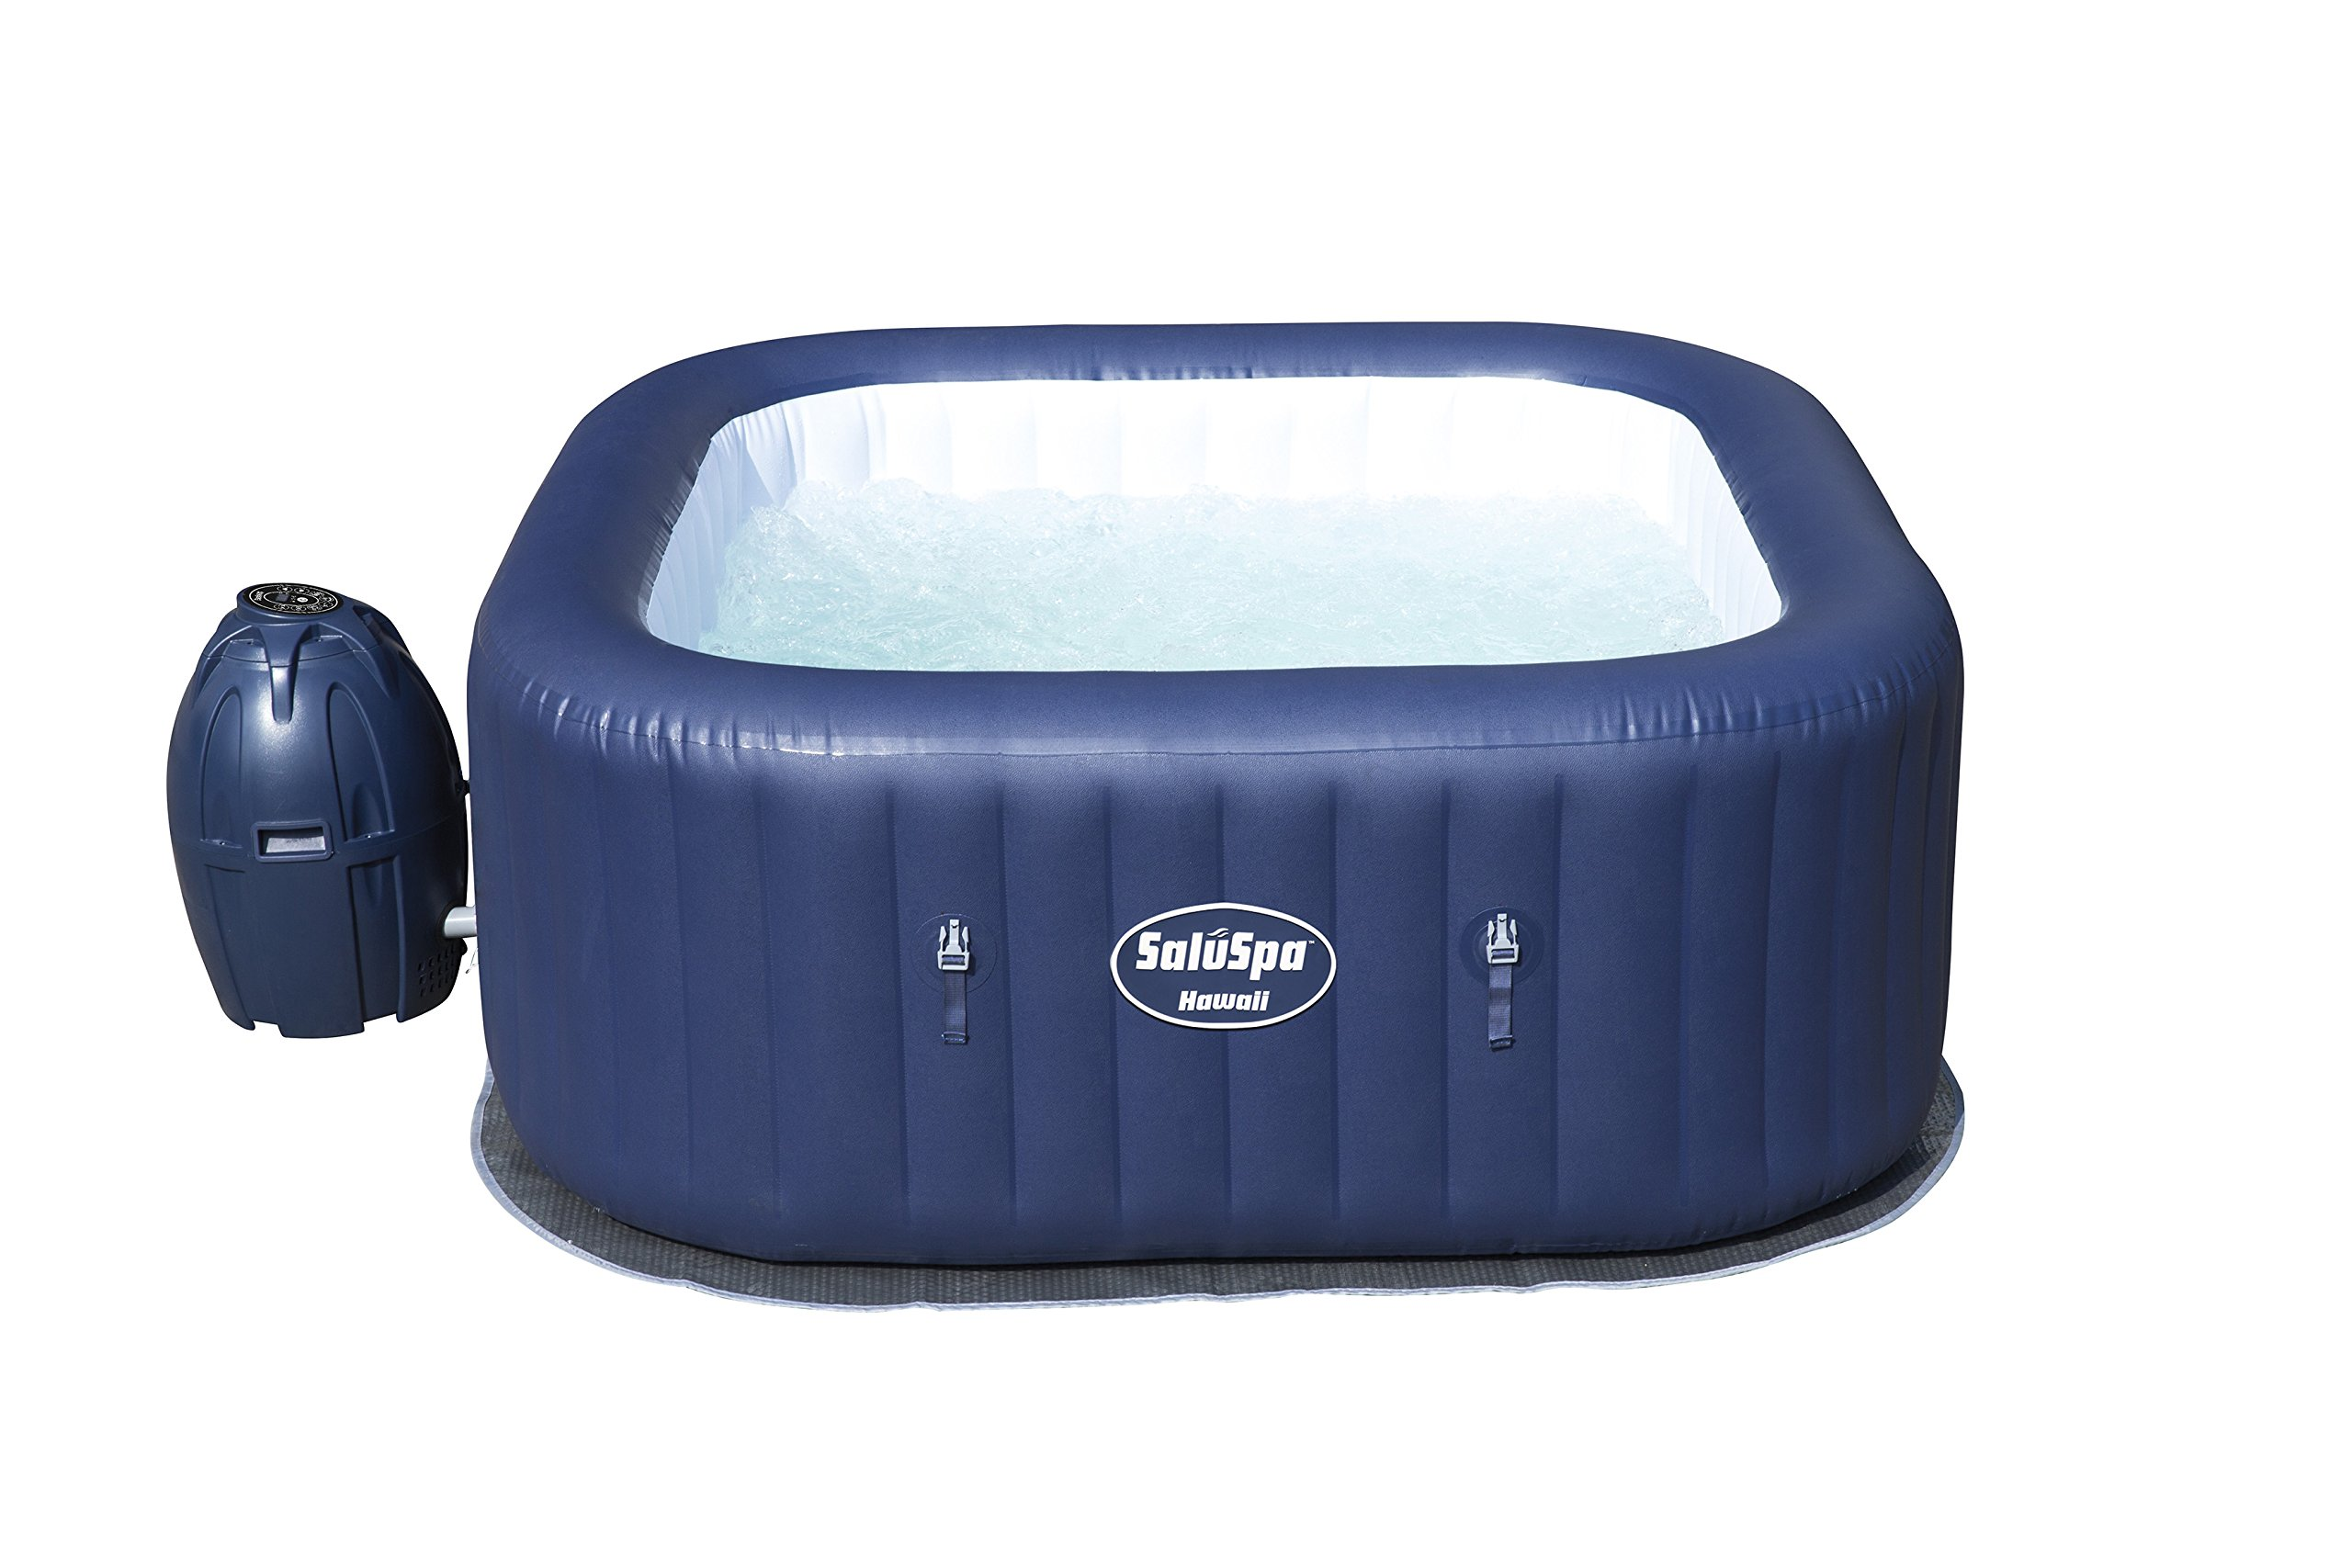 Best Rated In Outdoor Hot Tubs Helpful Customer Reviews Cal Spa 20 Amp 240 Volt High Current Gfci The Works Bestway 54155e Hawaii Air Jet Inflatable Product Image